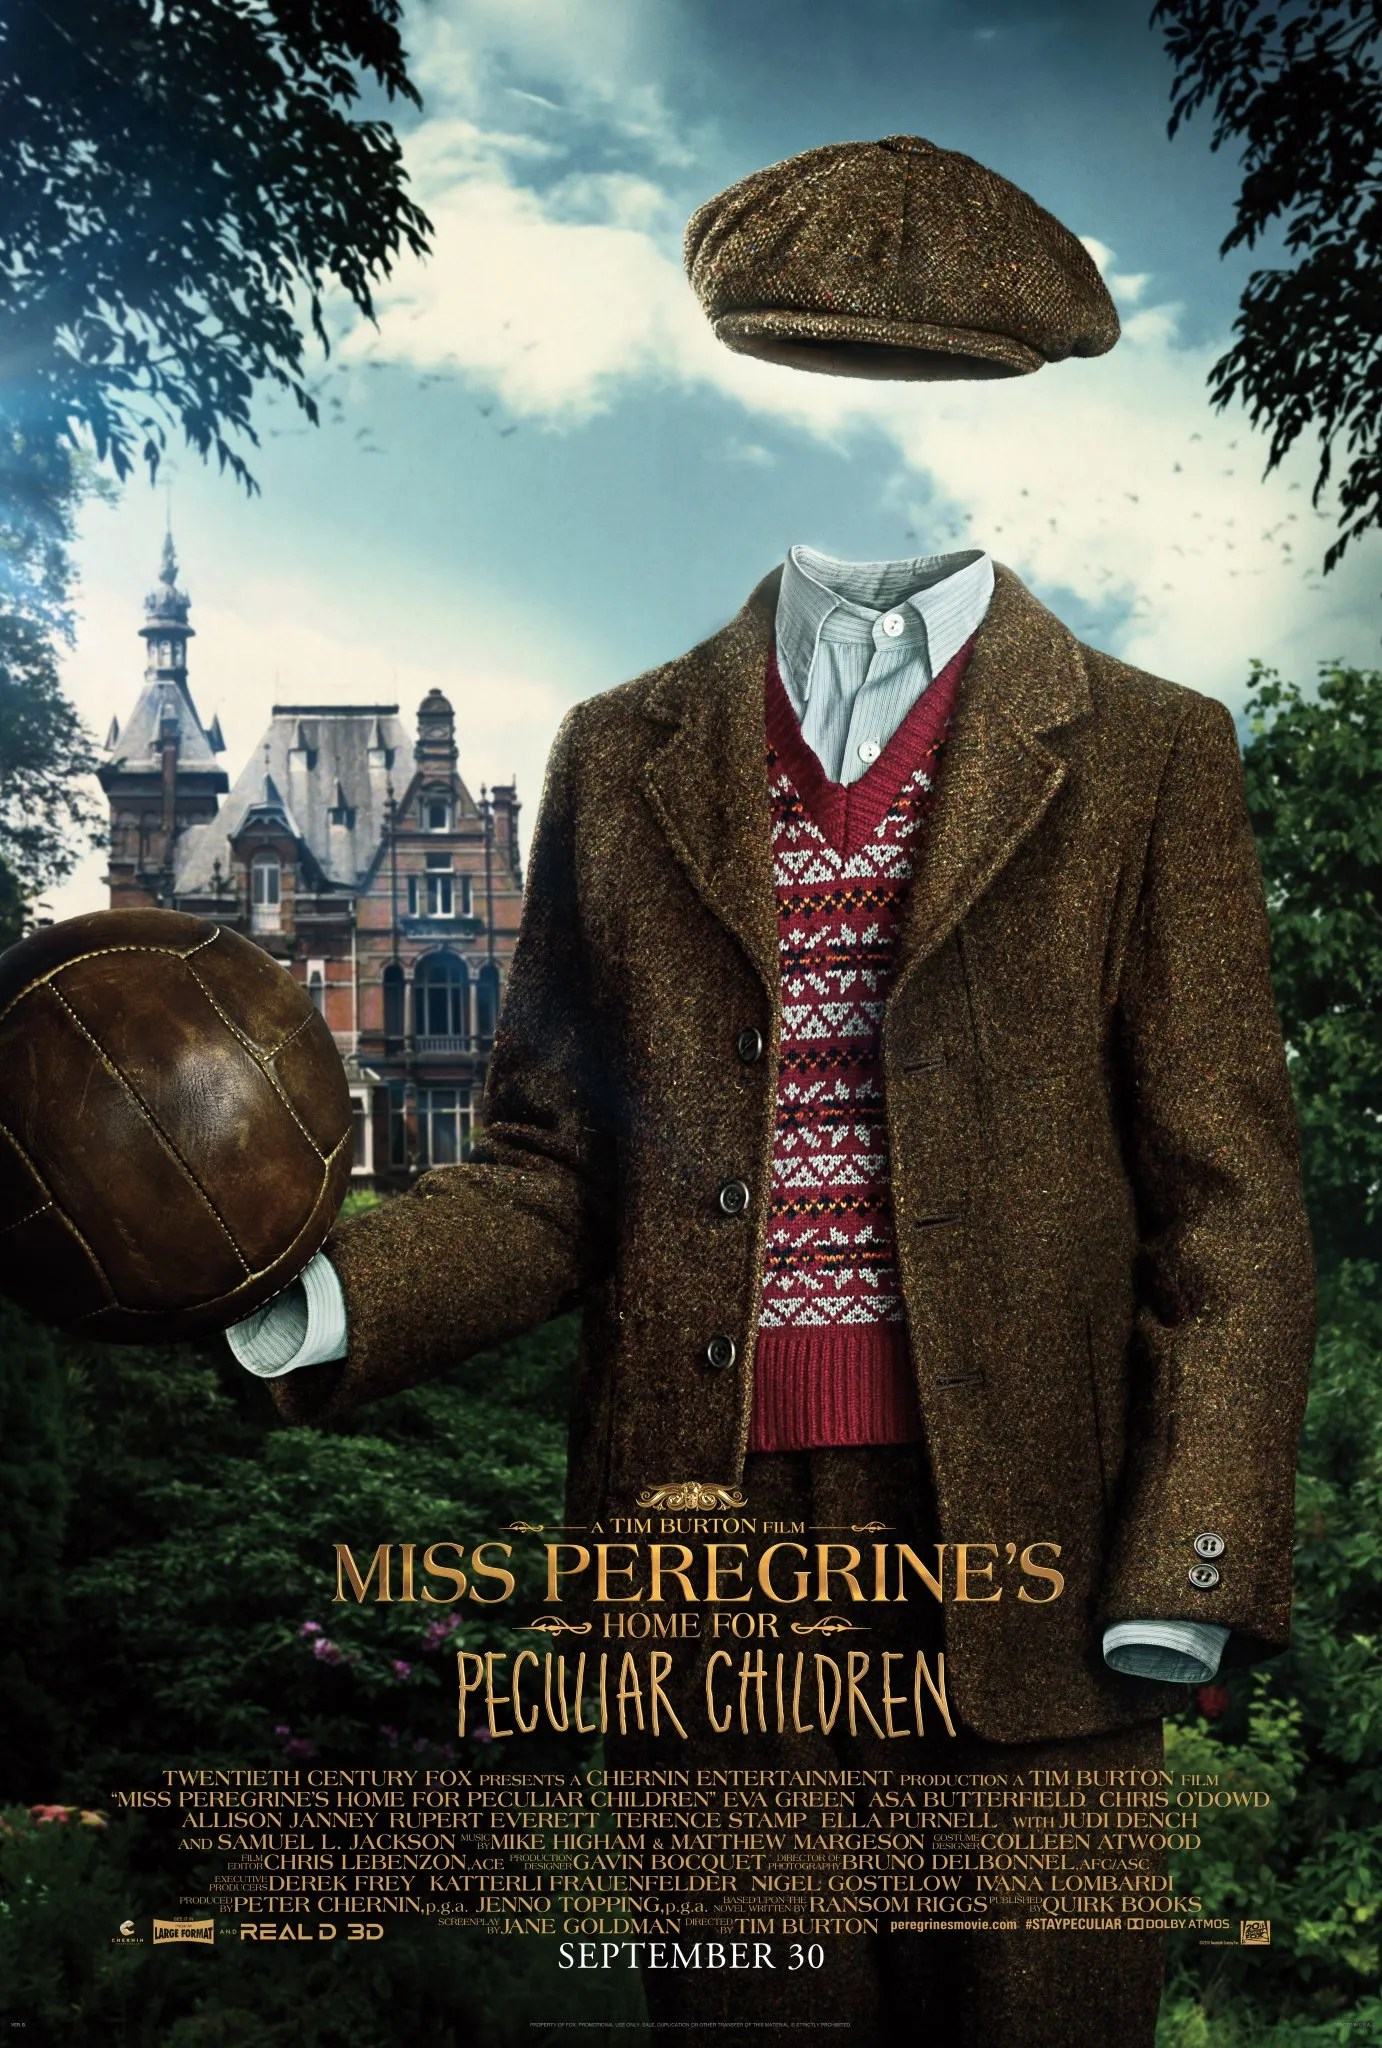 El Hogar De Miss Peregrine Para Niños Miss Peregrine's Home For Peculiar Children Movie Posters